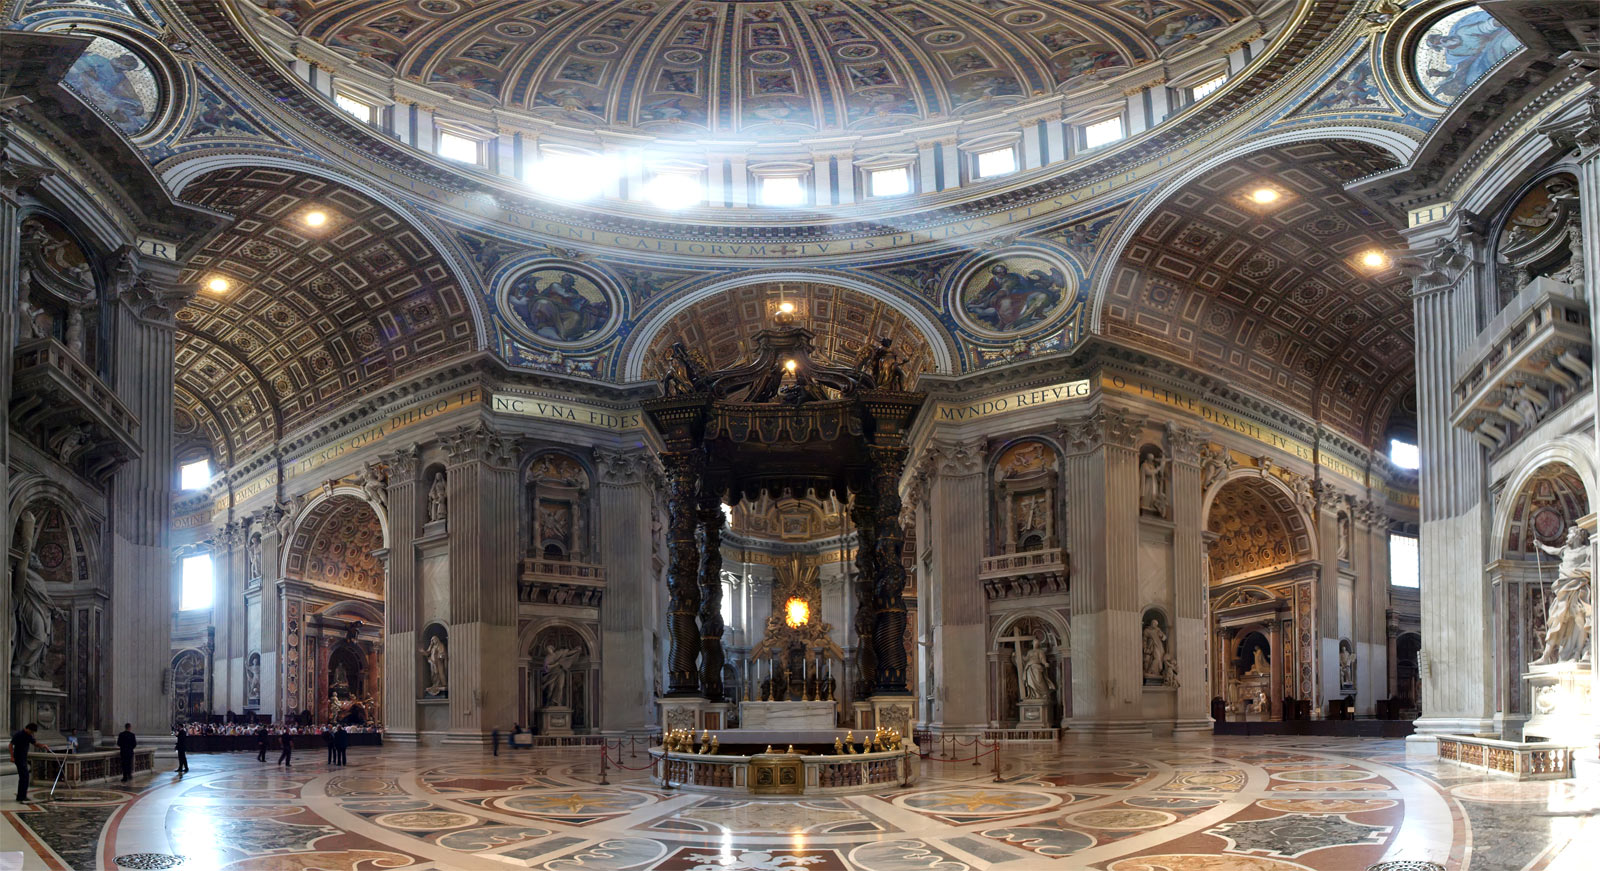 5 St. Peters Basilica